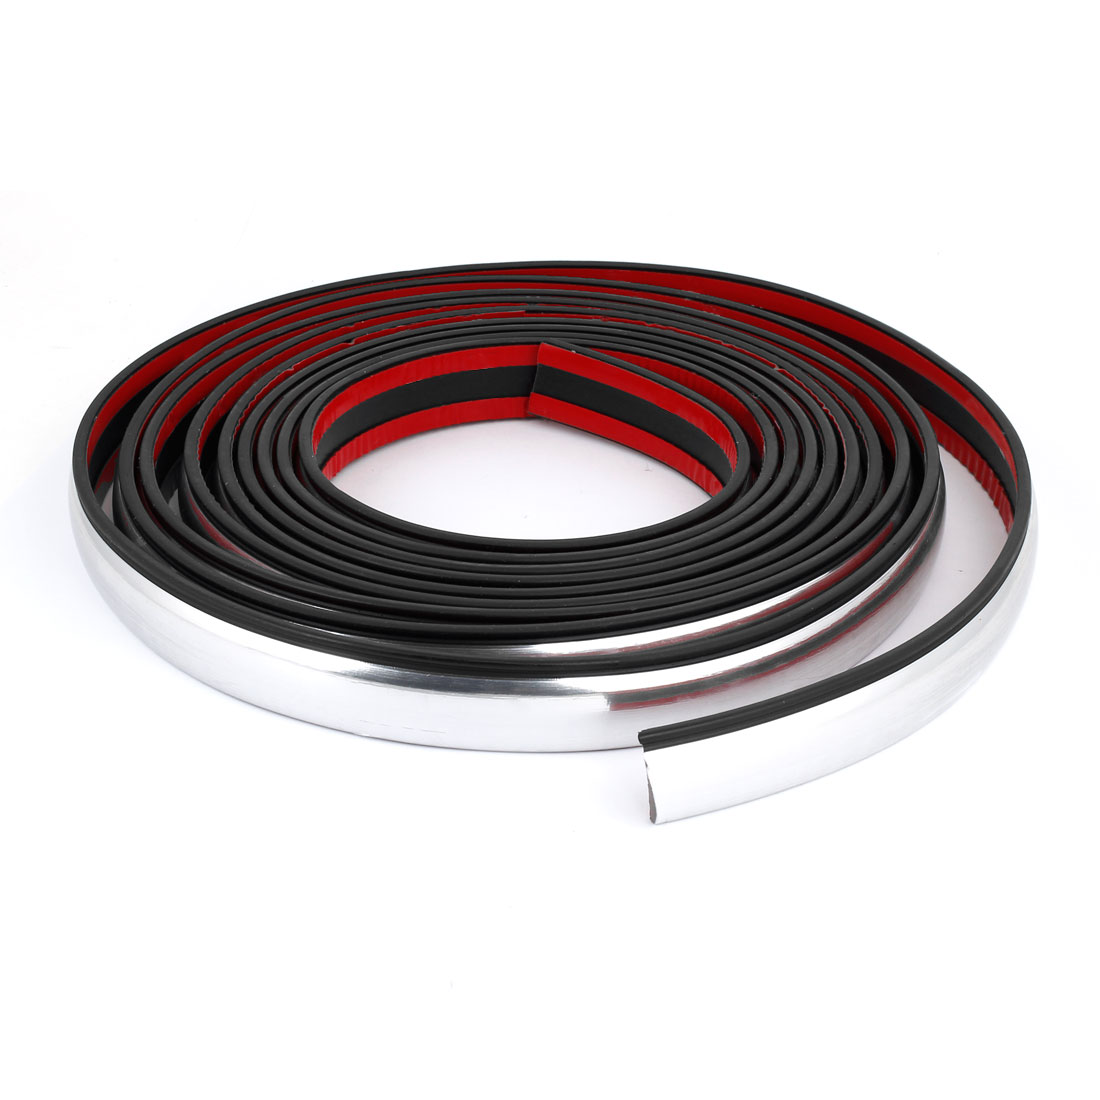 5M x 23mm Soft PVC Car Auto Wheel Fender Arch Sticking Moulding Trim Strip Decoration Silver Tone